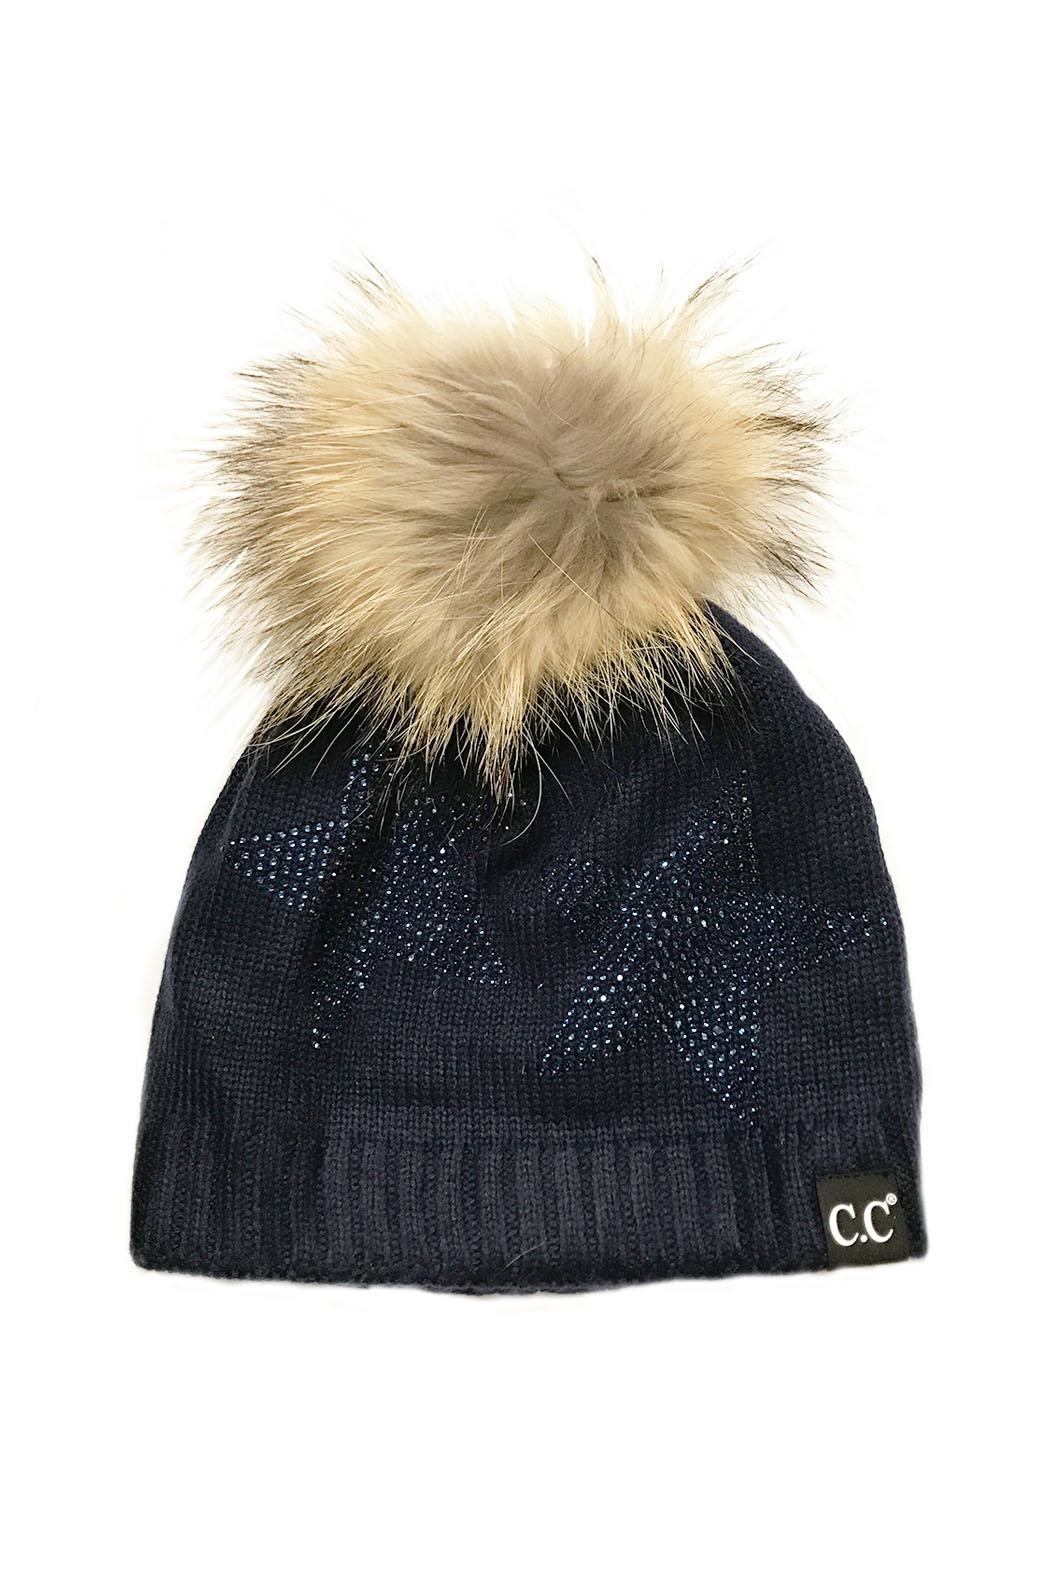 C.C. Star Dazzled Hat - Main Image